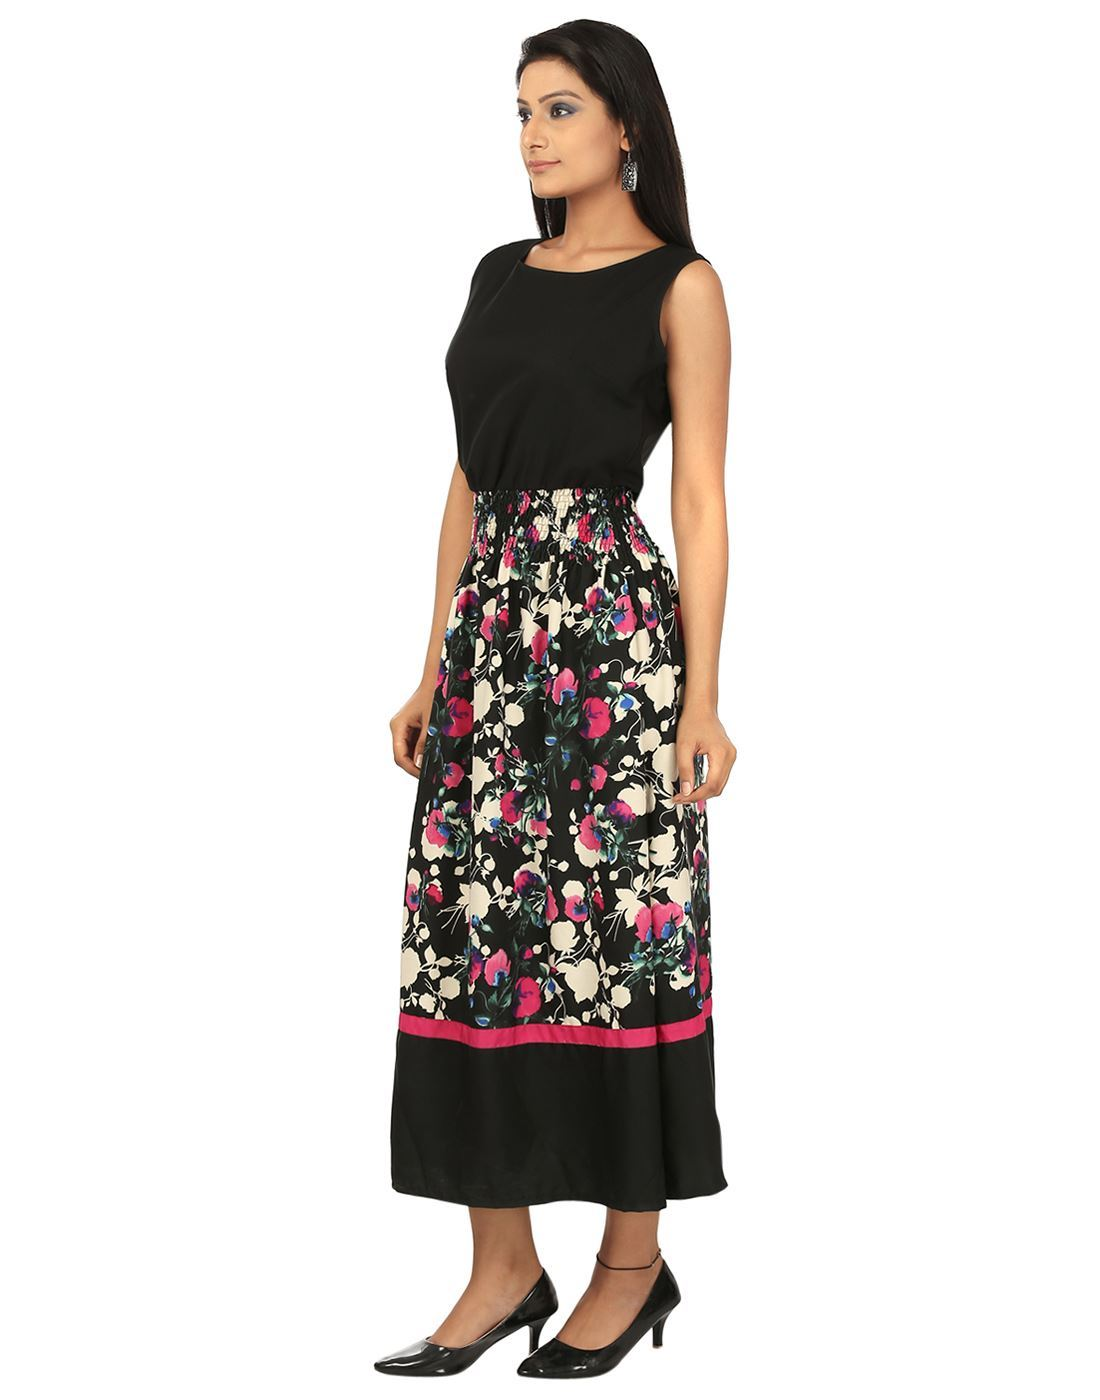 99a9b4d068 ... Picture of AK FASHION Black & Pink Maxi Fit and Flare Dress ...